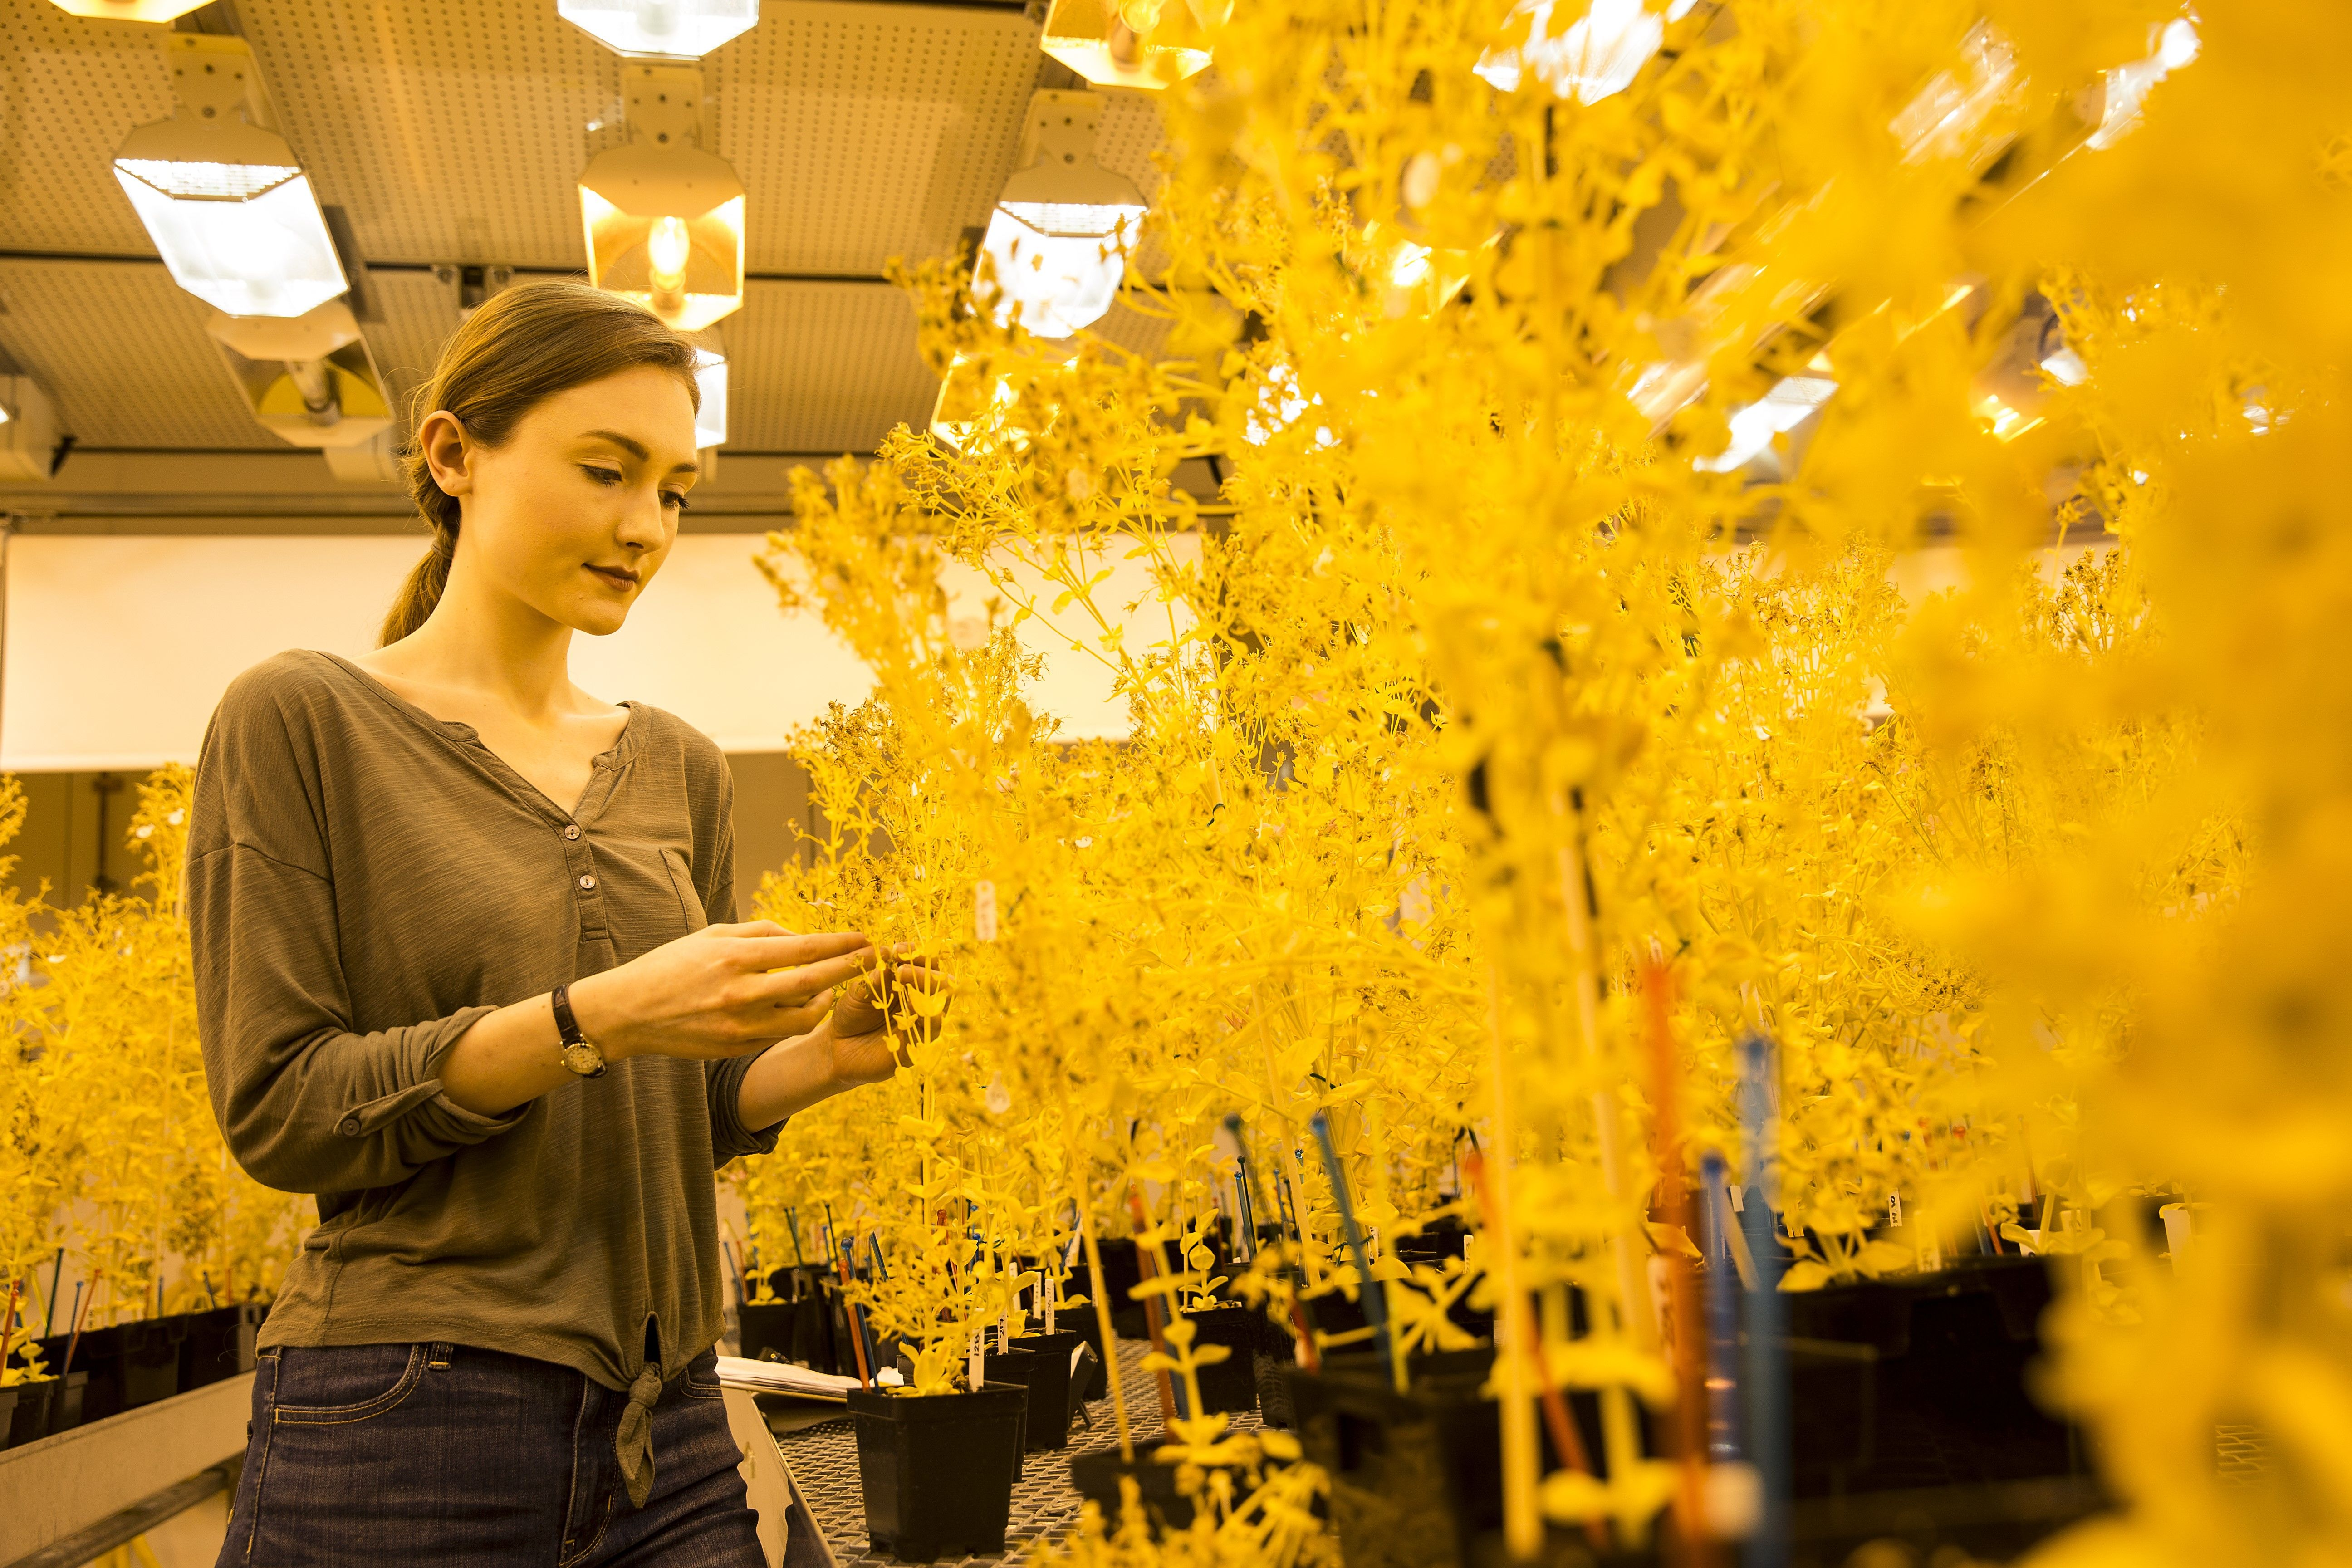 A College of Science and Technology student works with yellow plants in a biology lab.